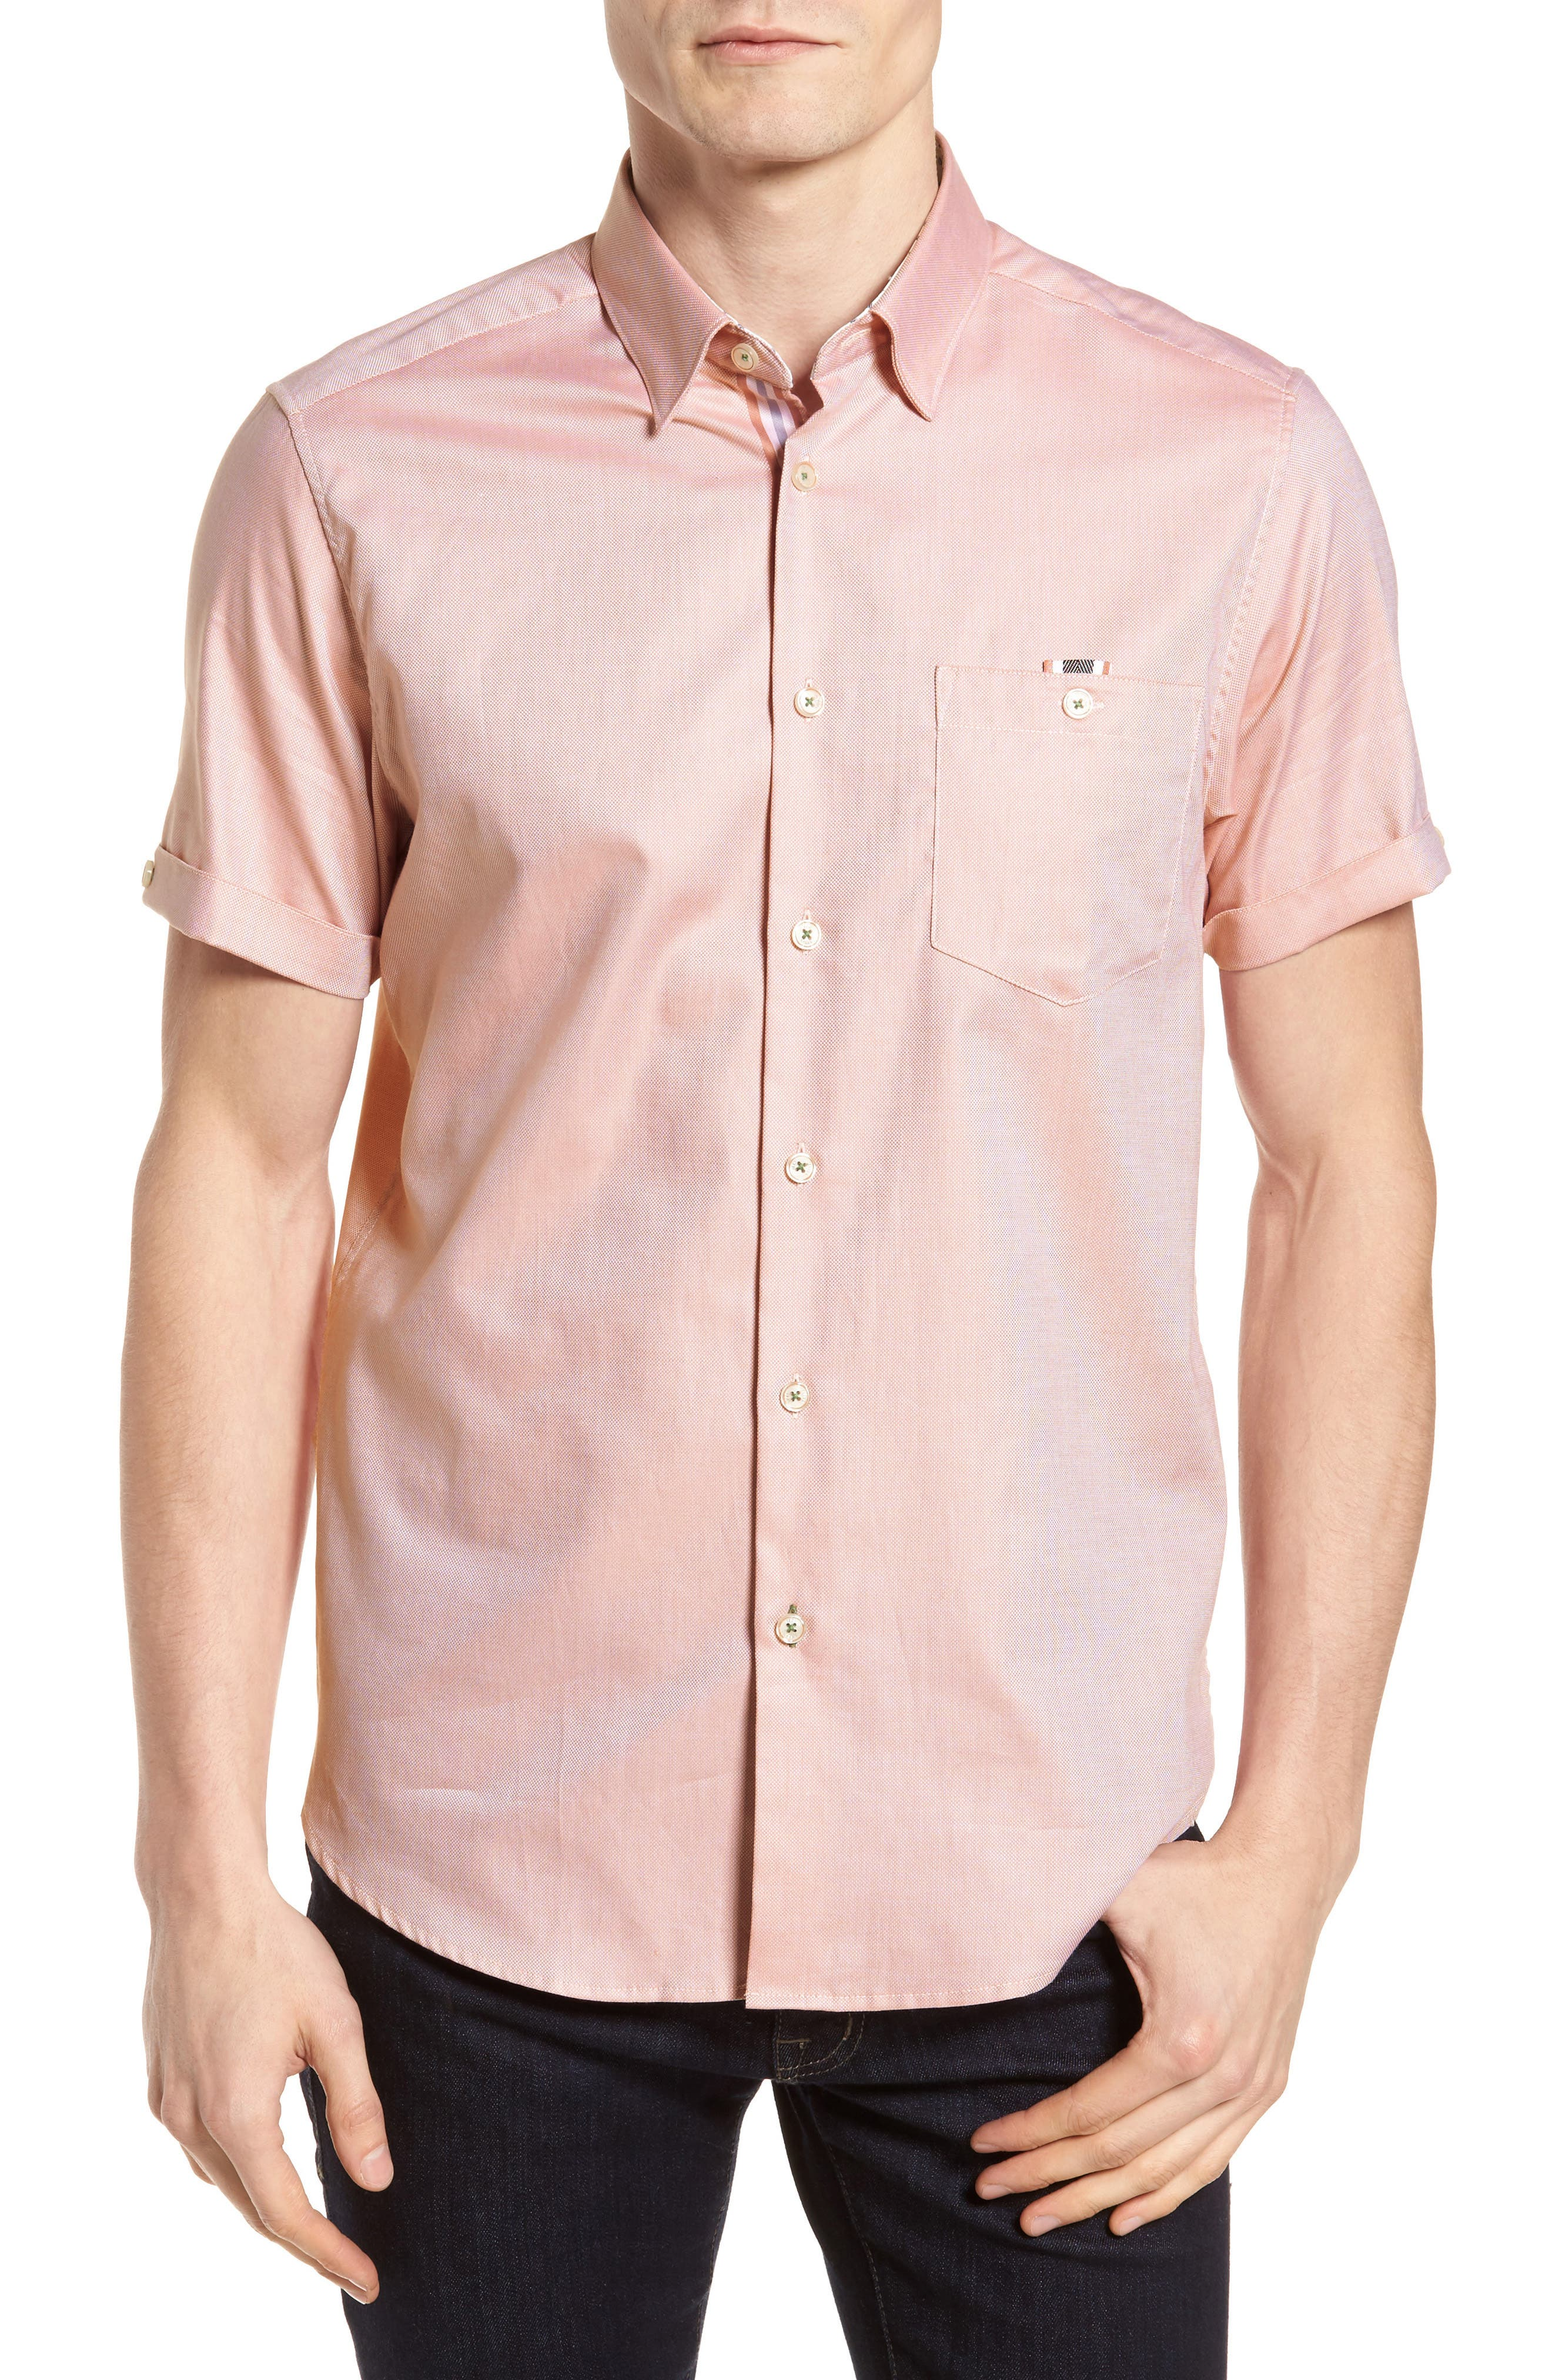 Wallo Trim Fit Short Sleeve Sport Shirt,                         Main,                         color, Pink